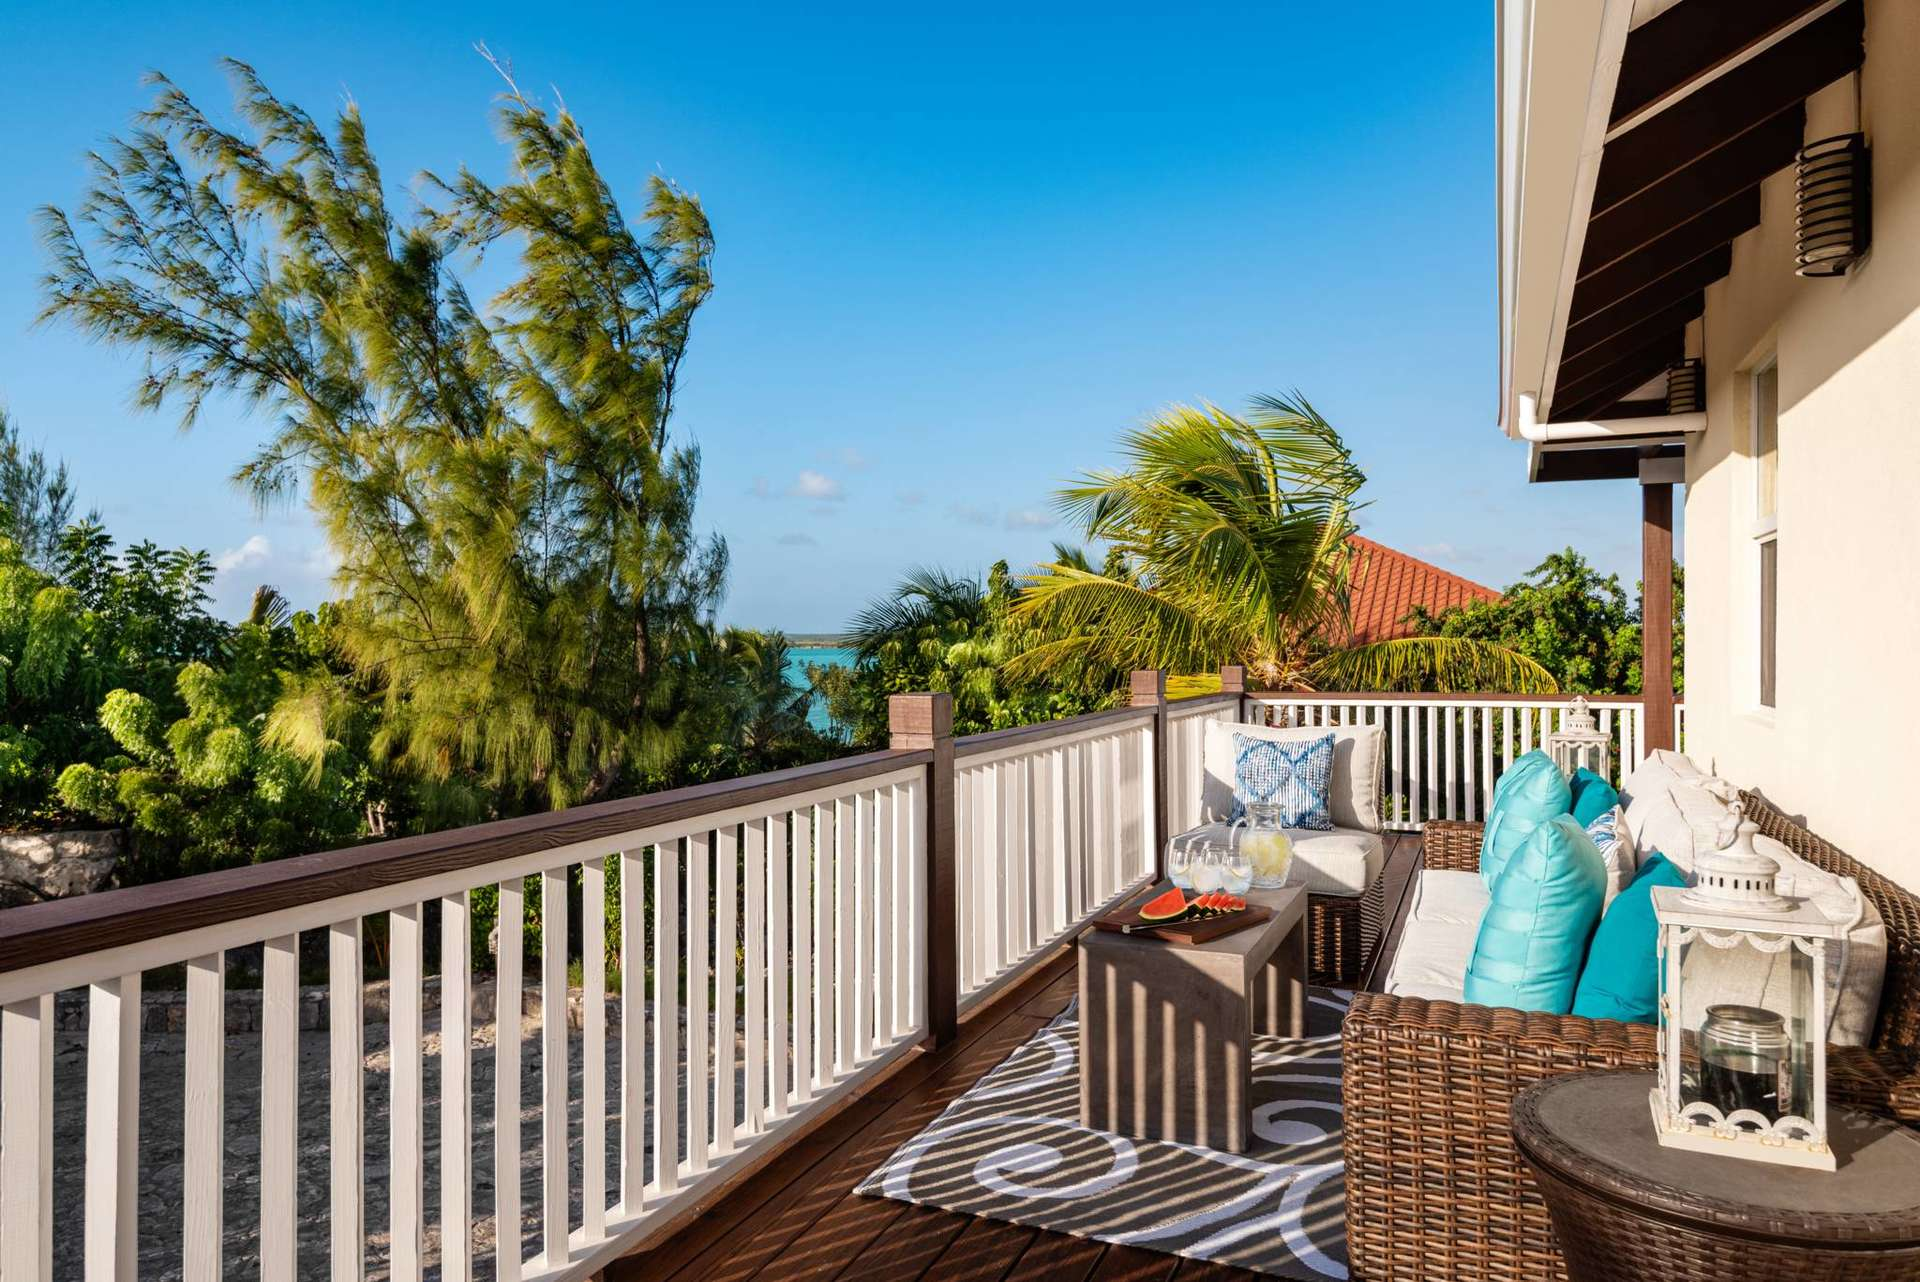 Luxury villa rentals caribbean - Turks and caicos - Providenciales - Chalk sound - Bashert Cottage - Image 1/17